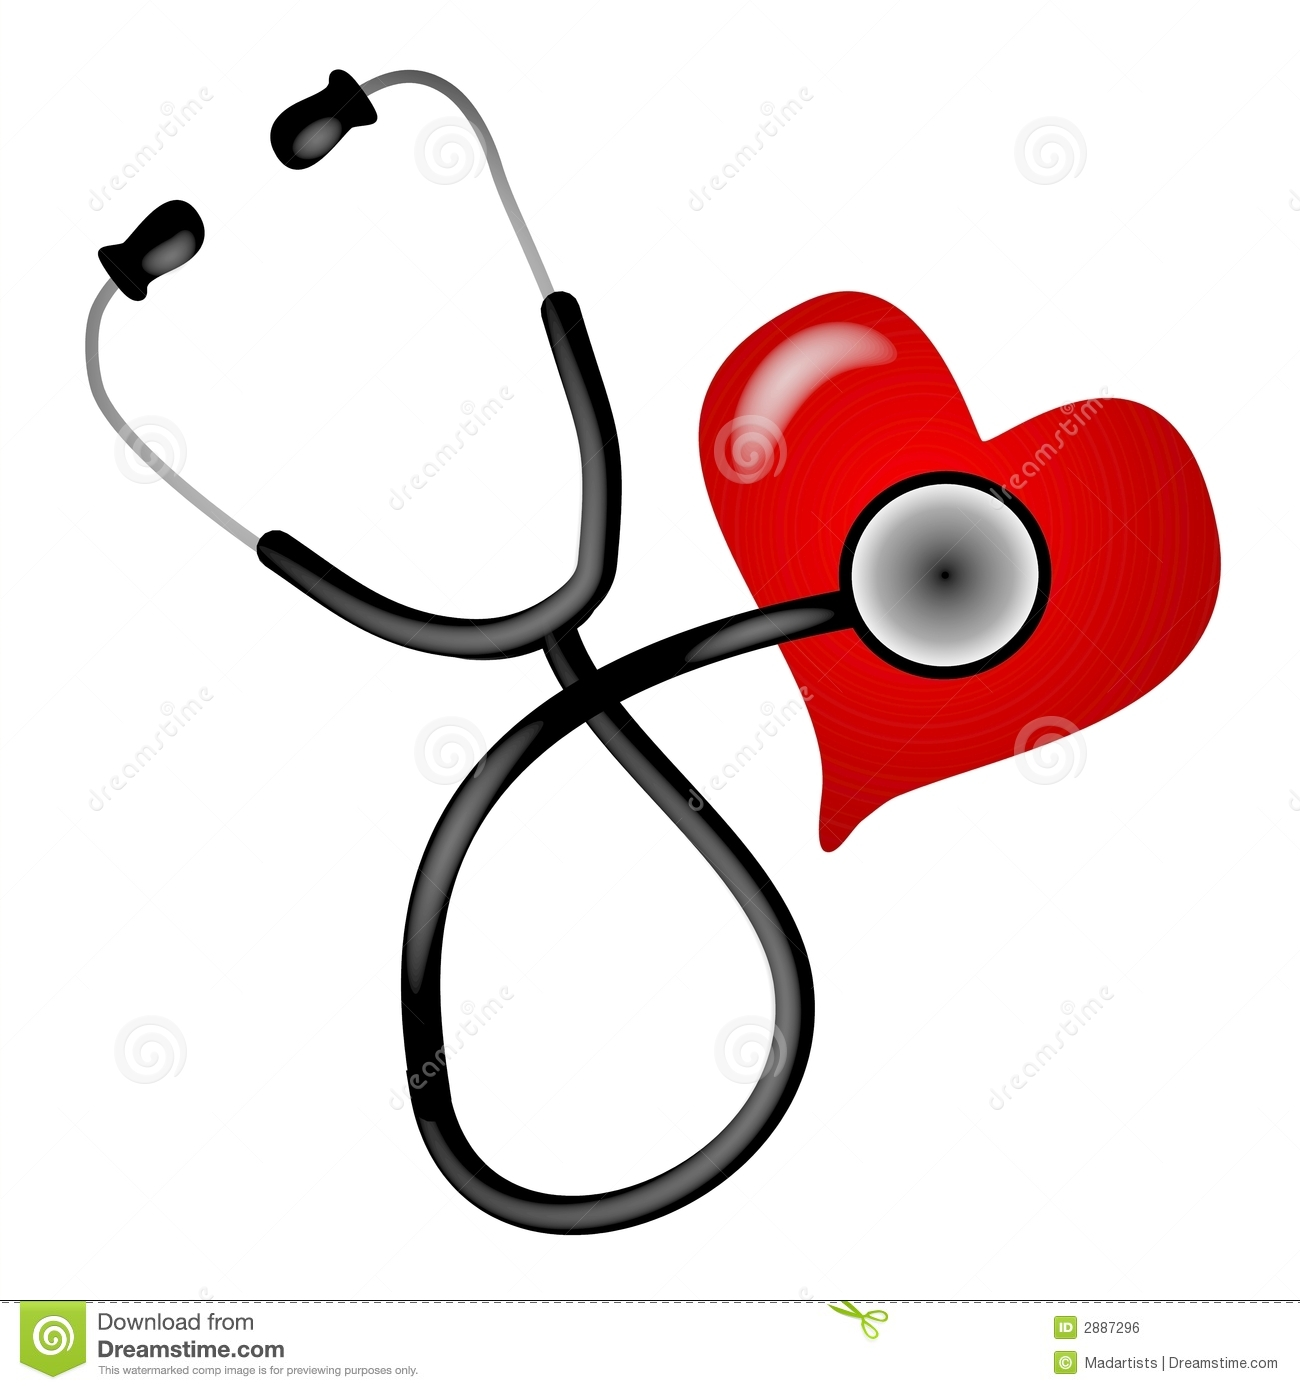 Stethoscope Clipart Free Clip - Stethoscope Images Clip Art